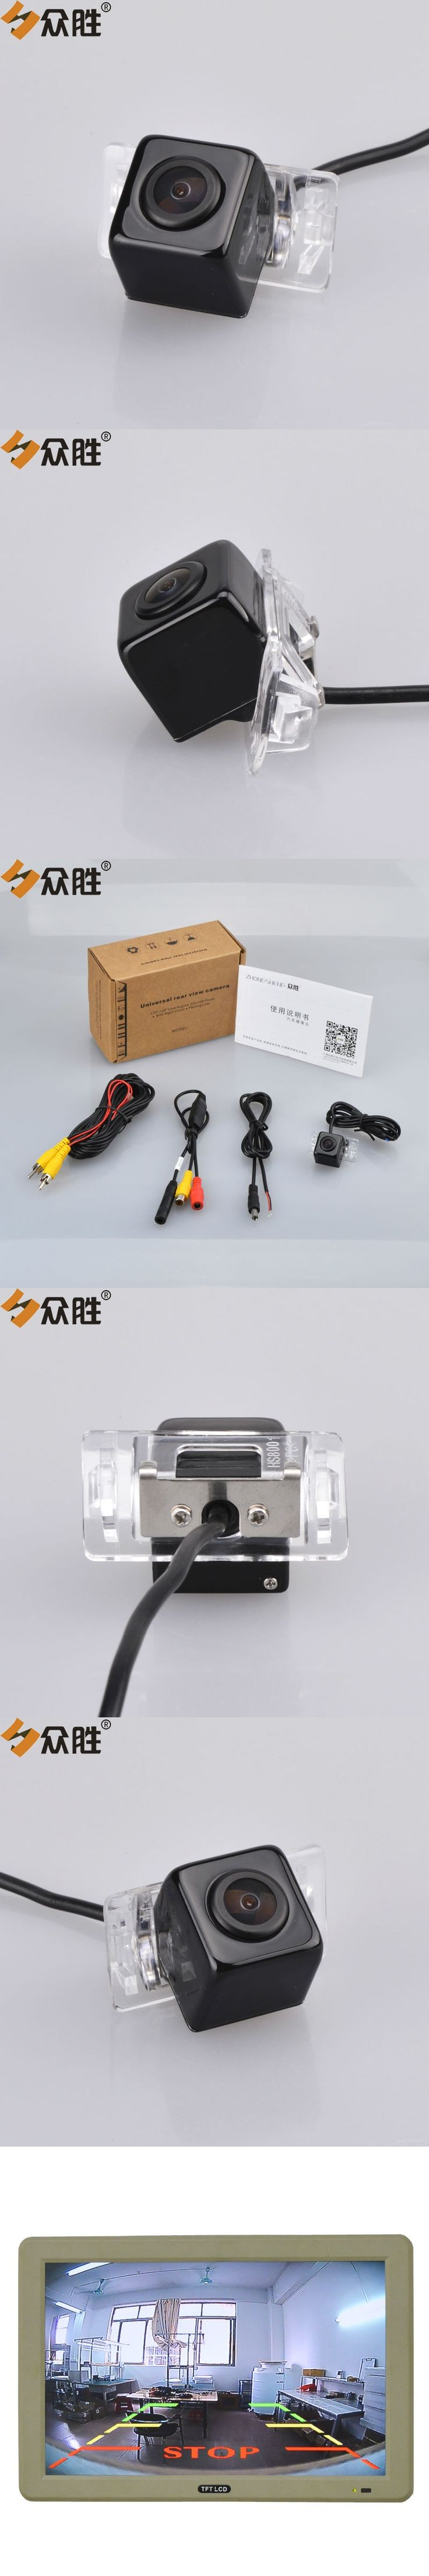 Car Rearview Camera for Toyota Camry 2008 Car Rear View Camera Auto Backup Reverse Parking Assistance Camera Waterproof HS8001